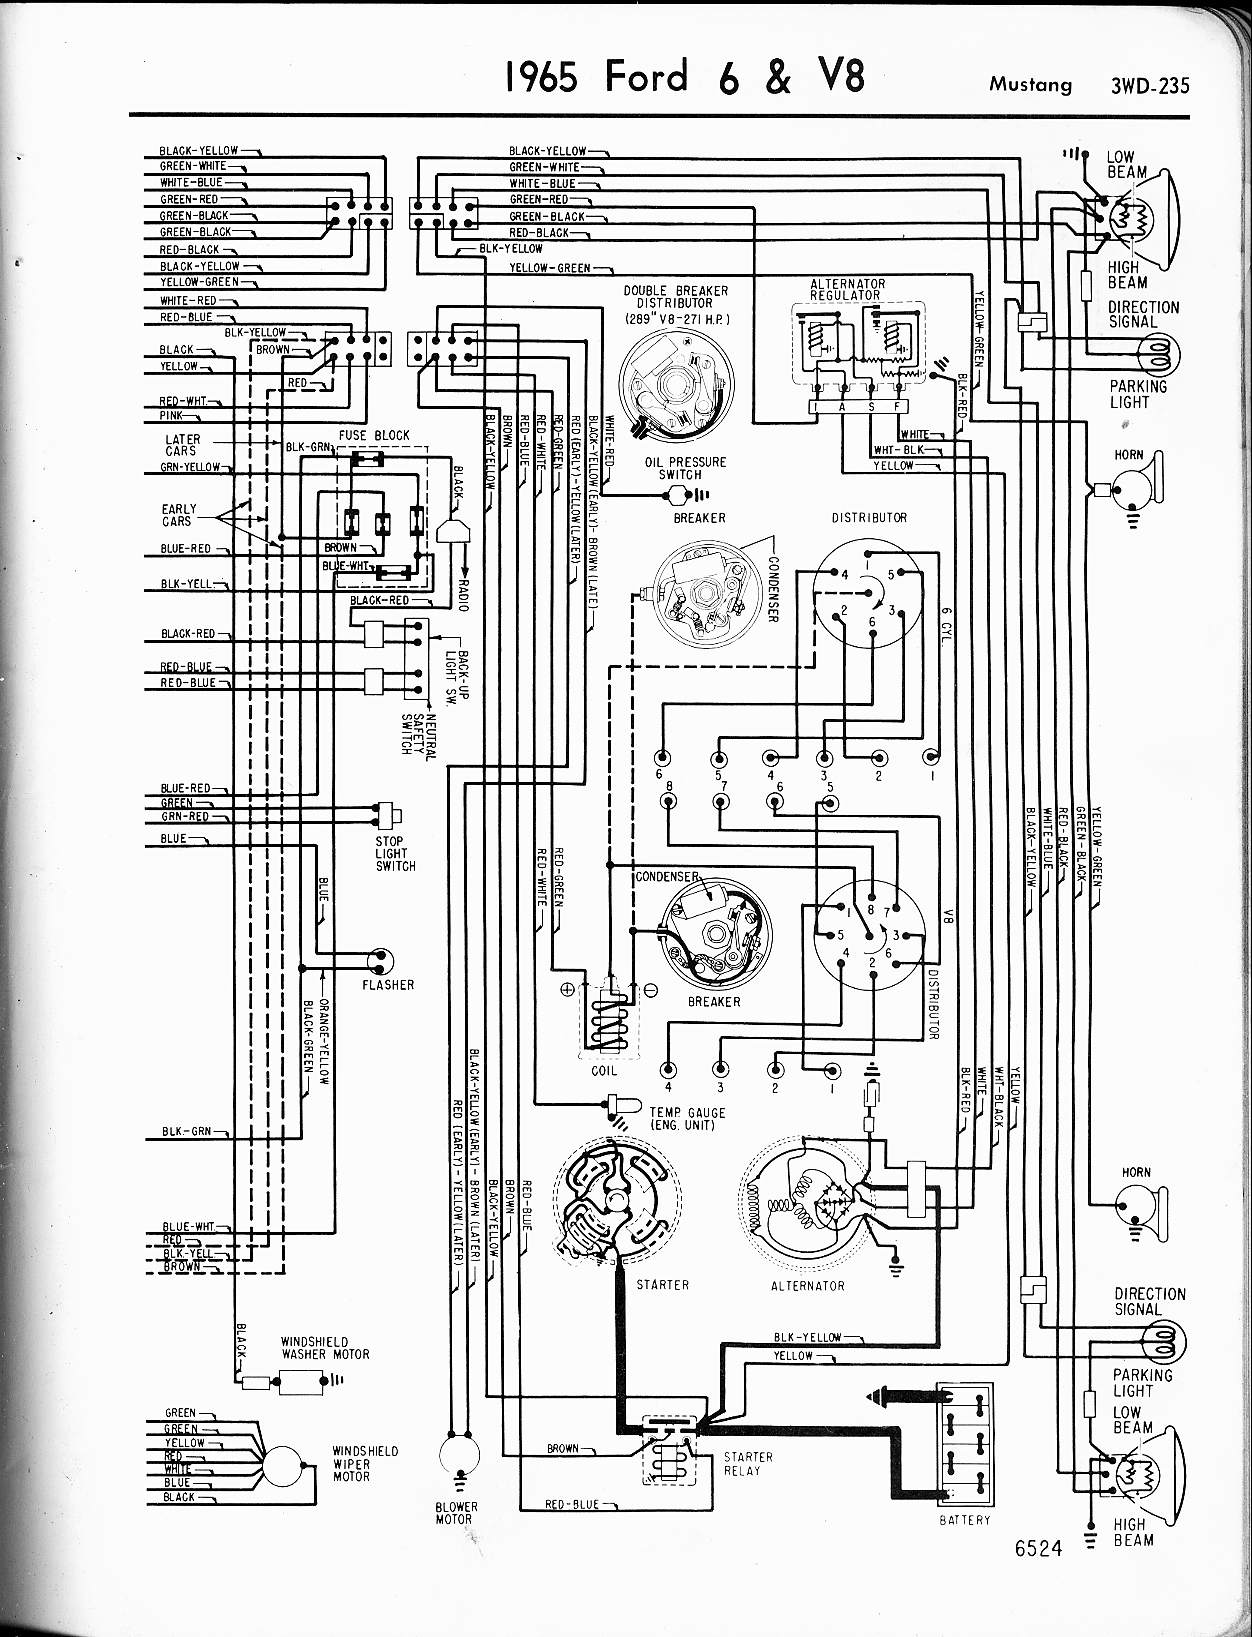 MWire5765 235 100 [ mustang horn wiring diagram ] 63 impala fuse box on 63 mustang wiring harness diagram at mifinder.co